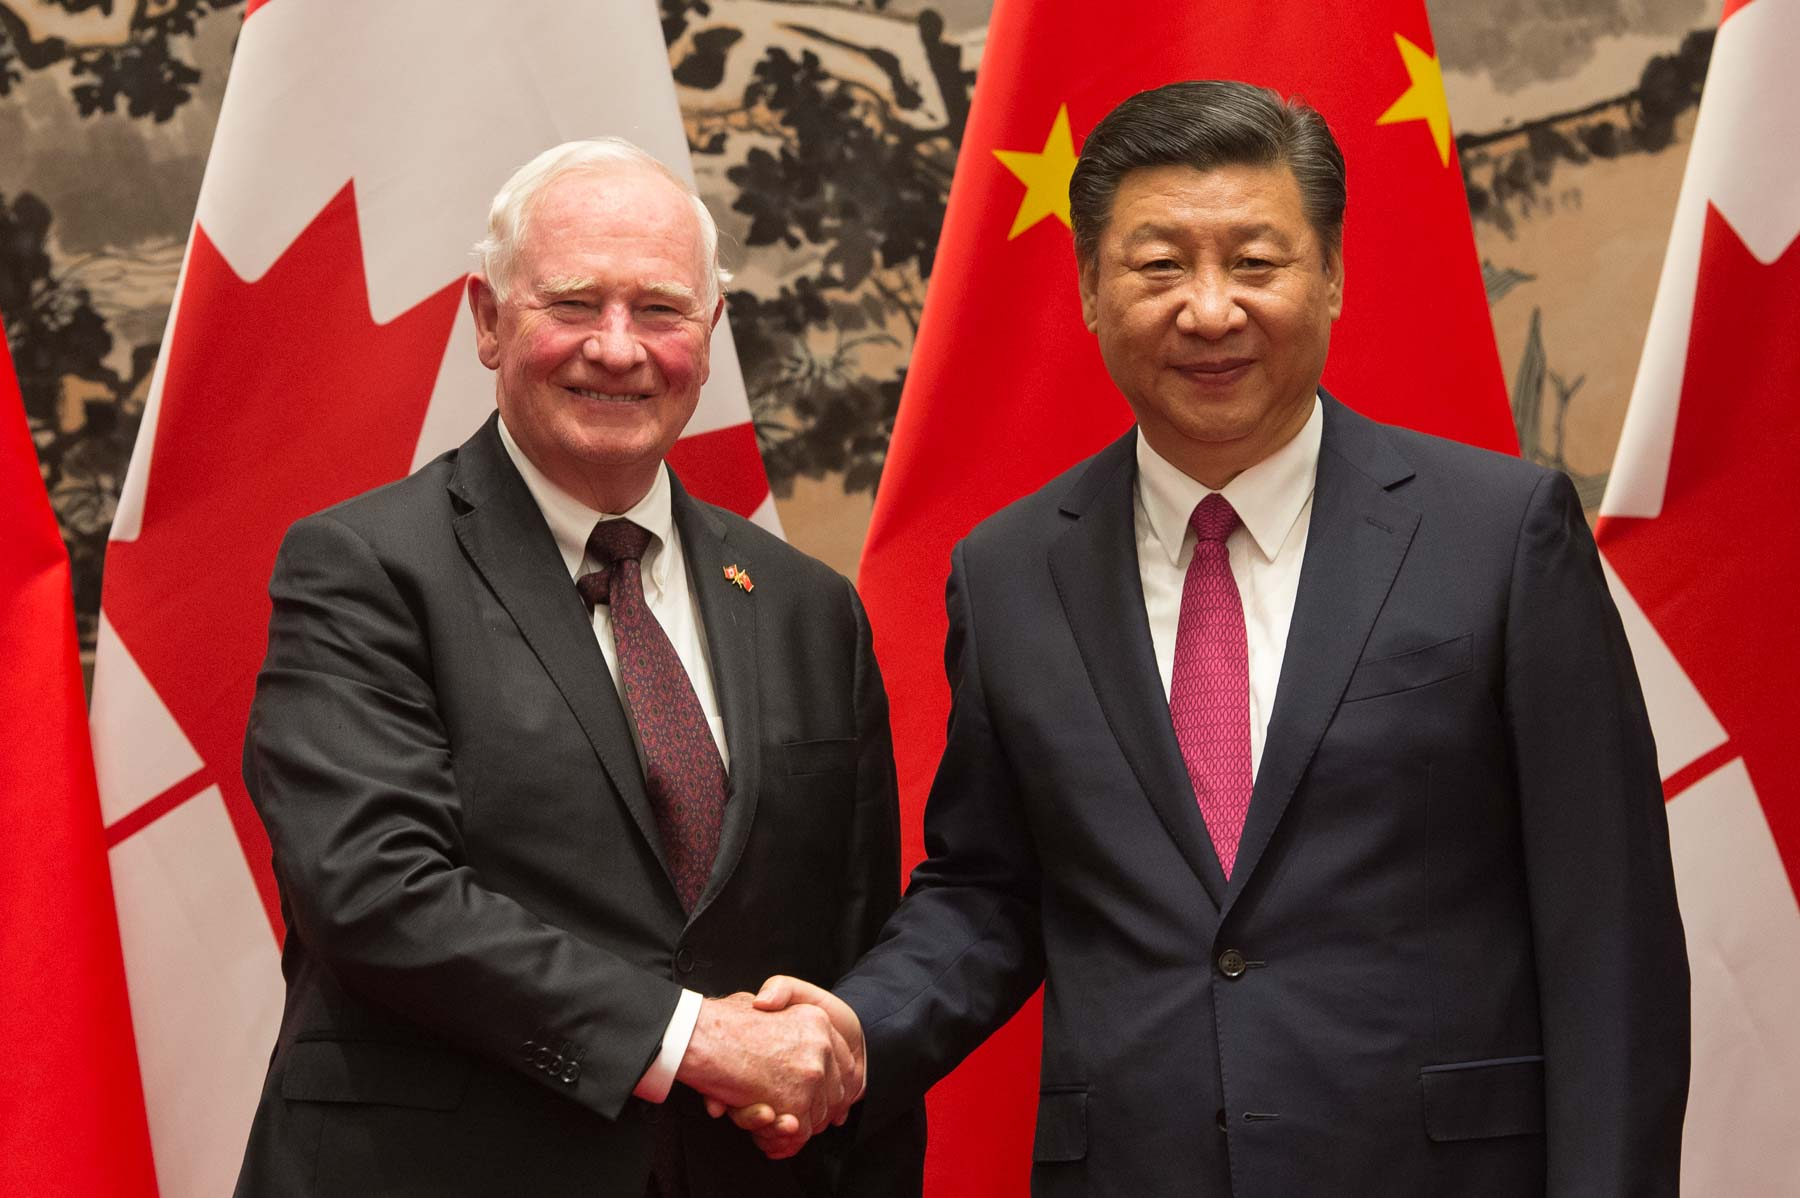 Later in the afternoon, the Governor General met with President Xi Jinping.